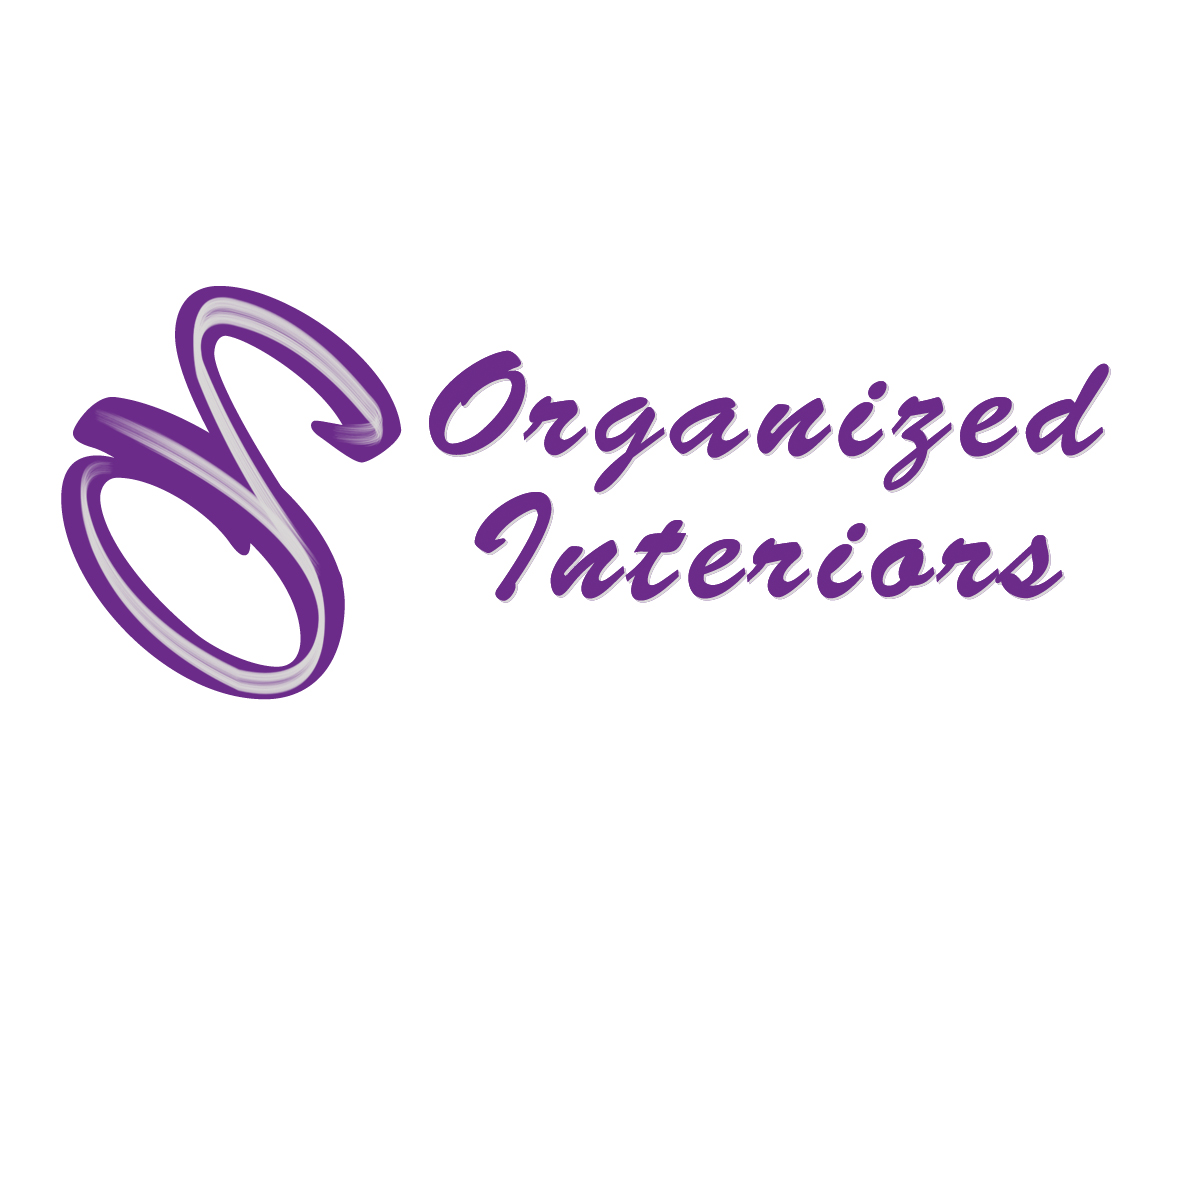 Logo Design by Private User - Entry No. 72 in the Logo Design Contest Imaginative Logo Design for Organized Interiors.